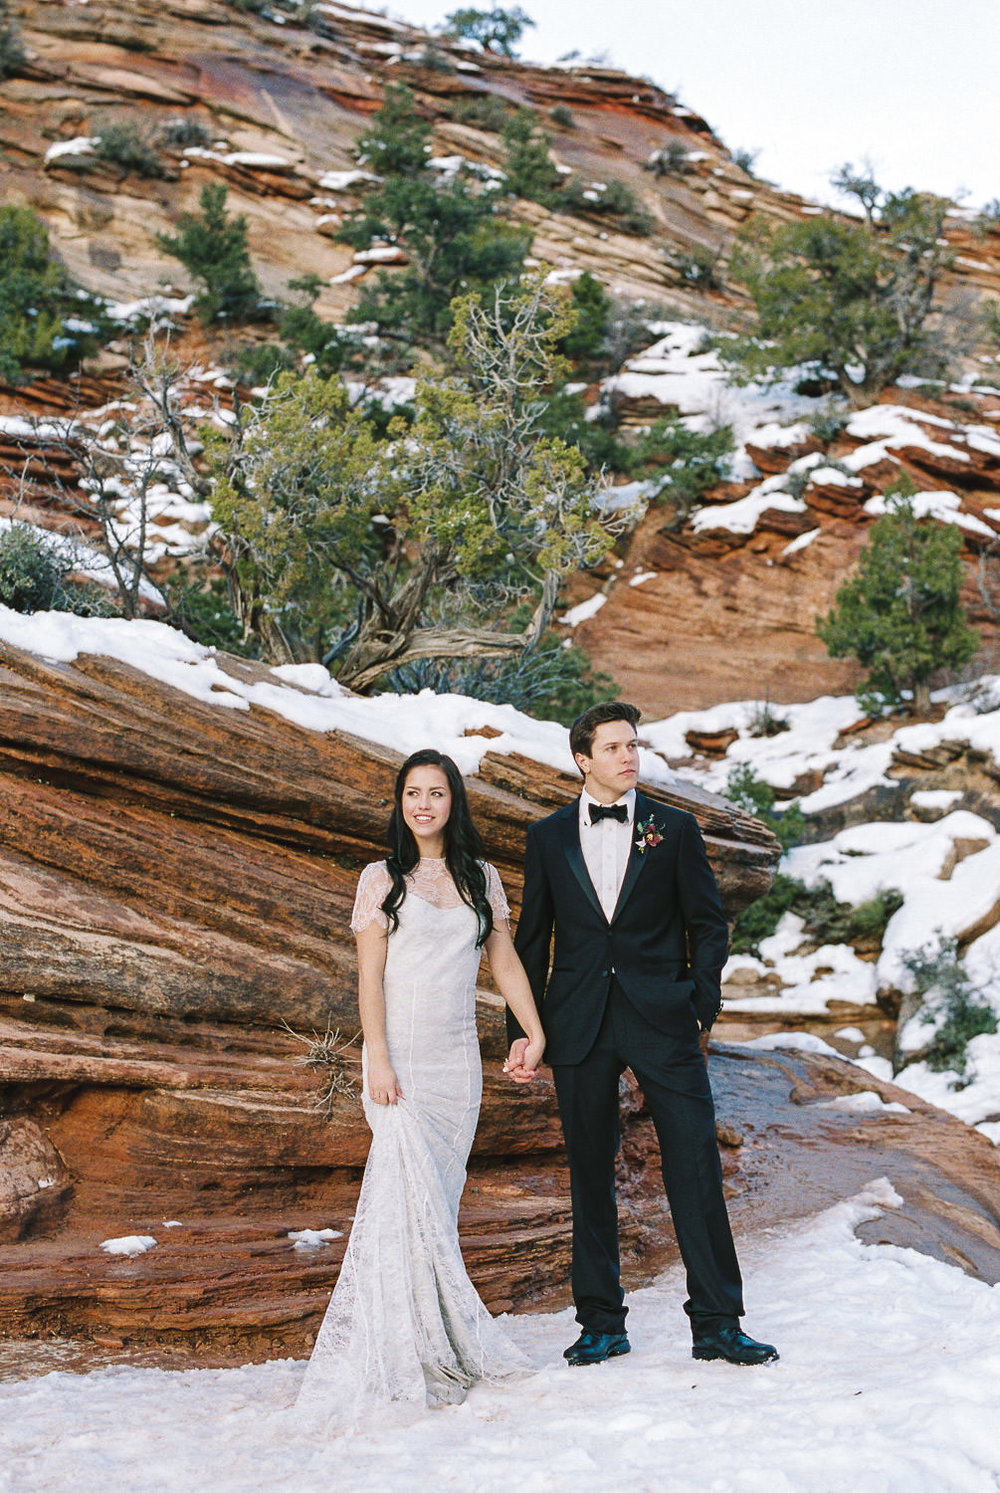 Husband and wife team travelling wedding photographers Zion elopement